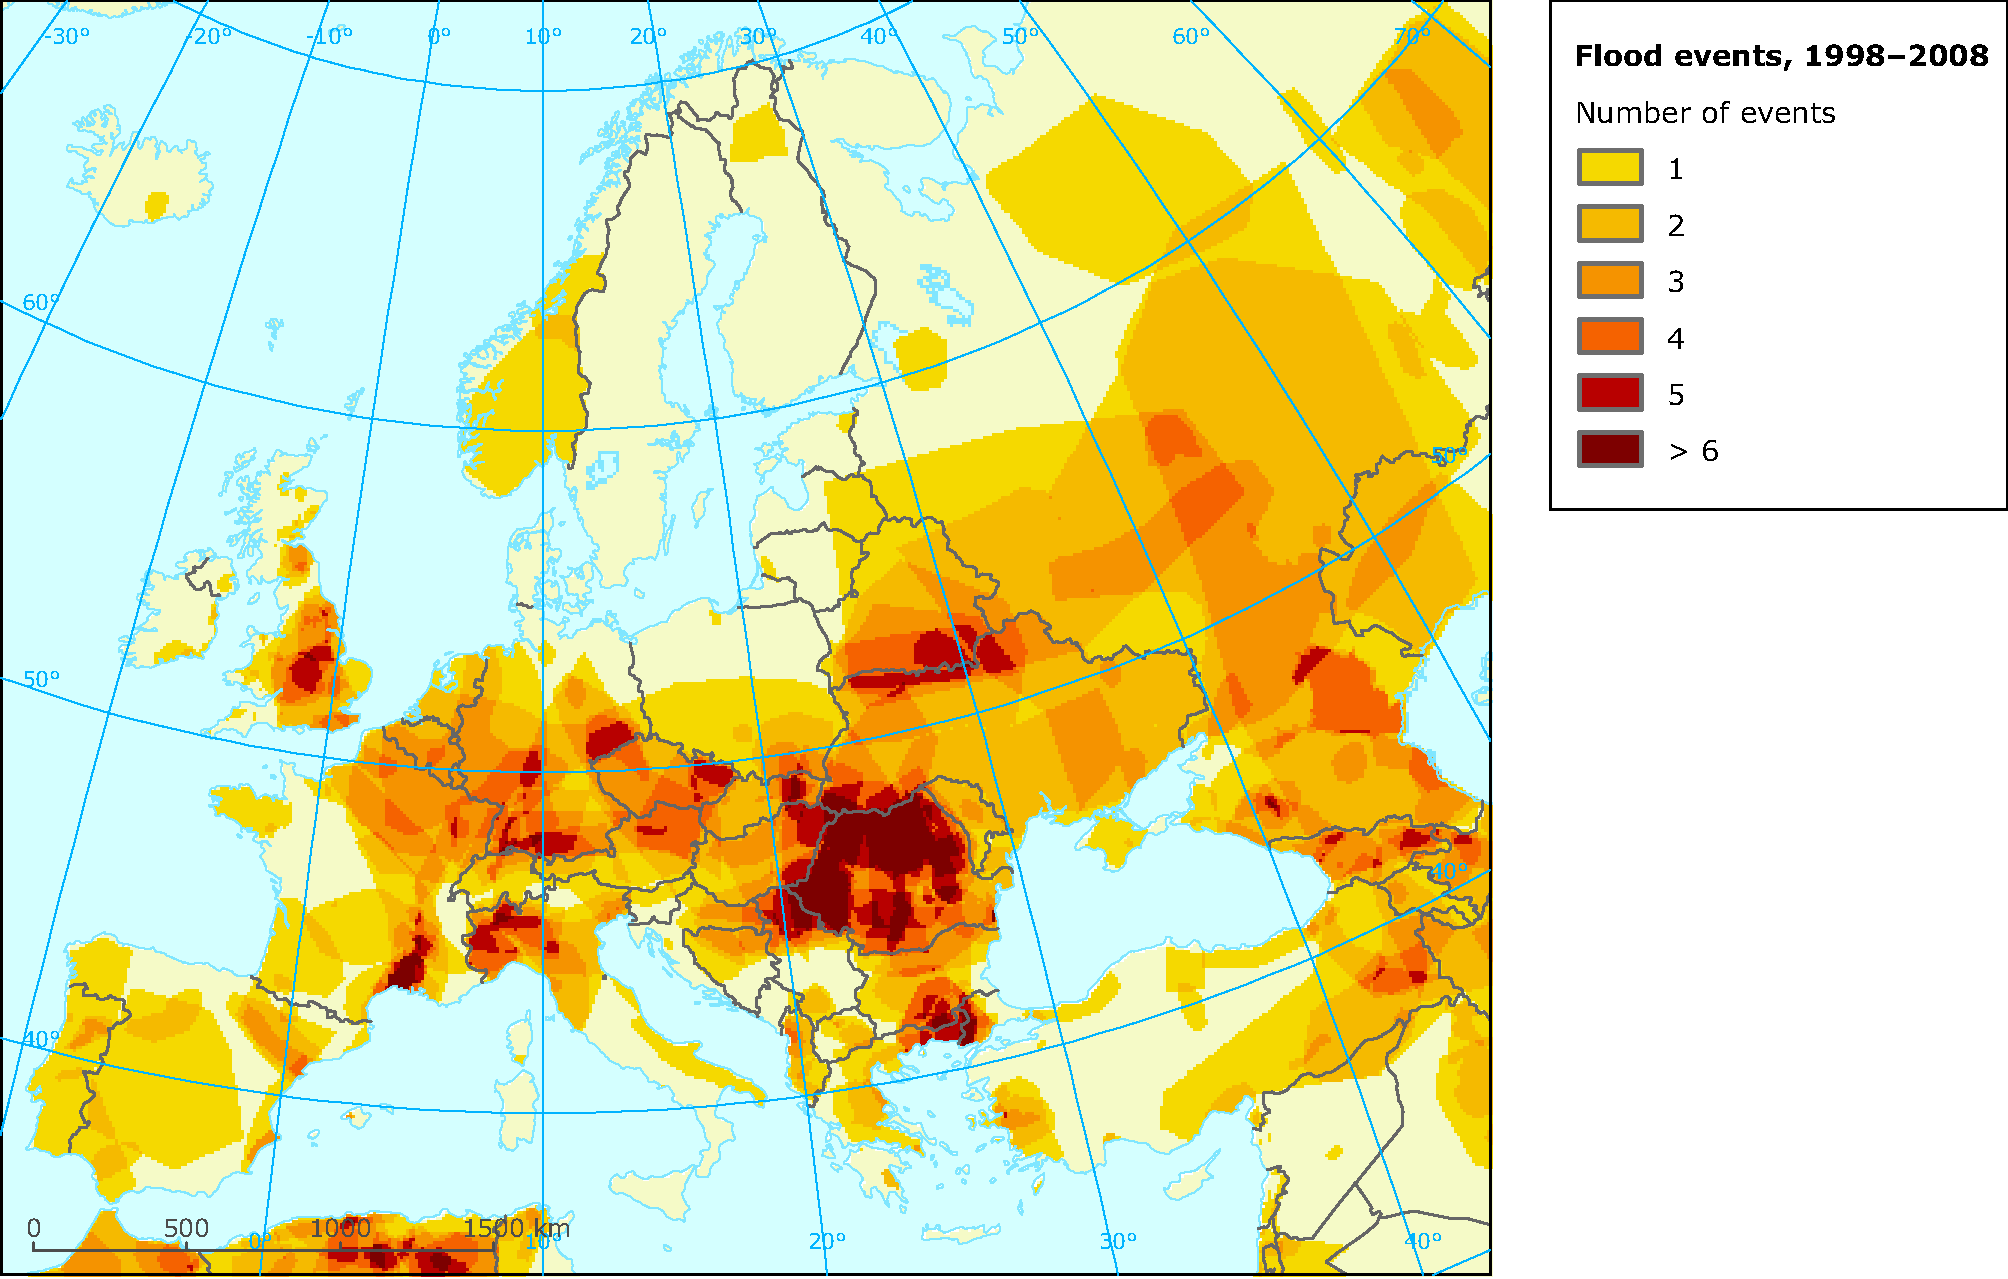 Occurrence of flood events in Europe 1998-2008